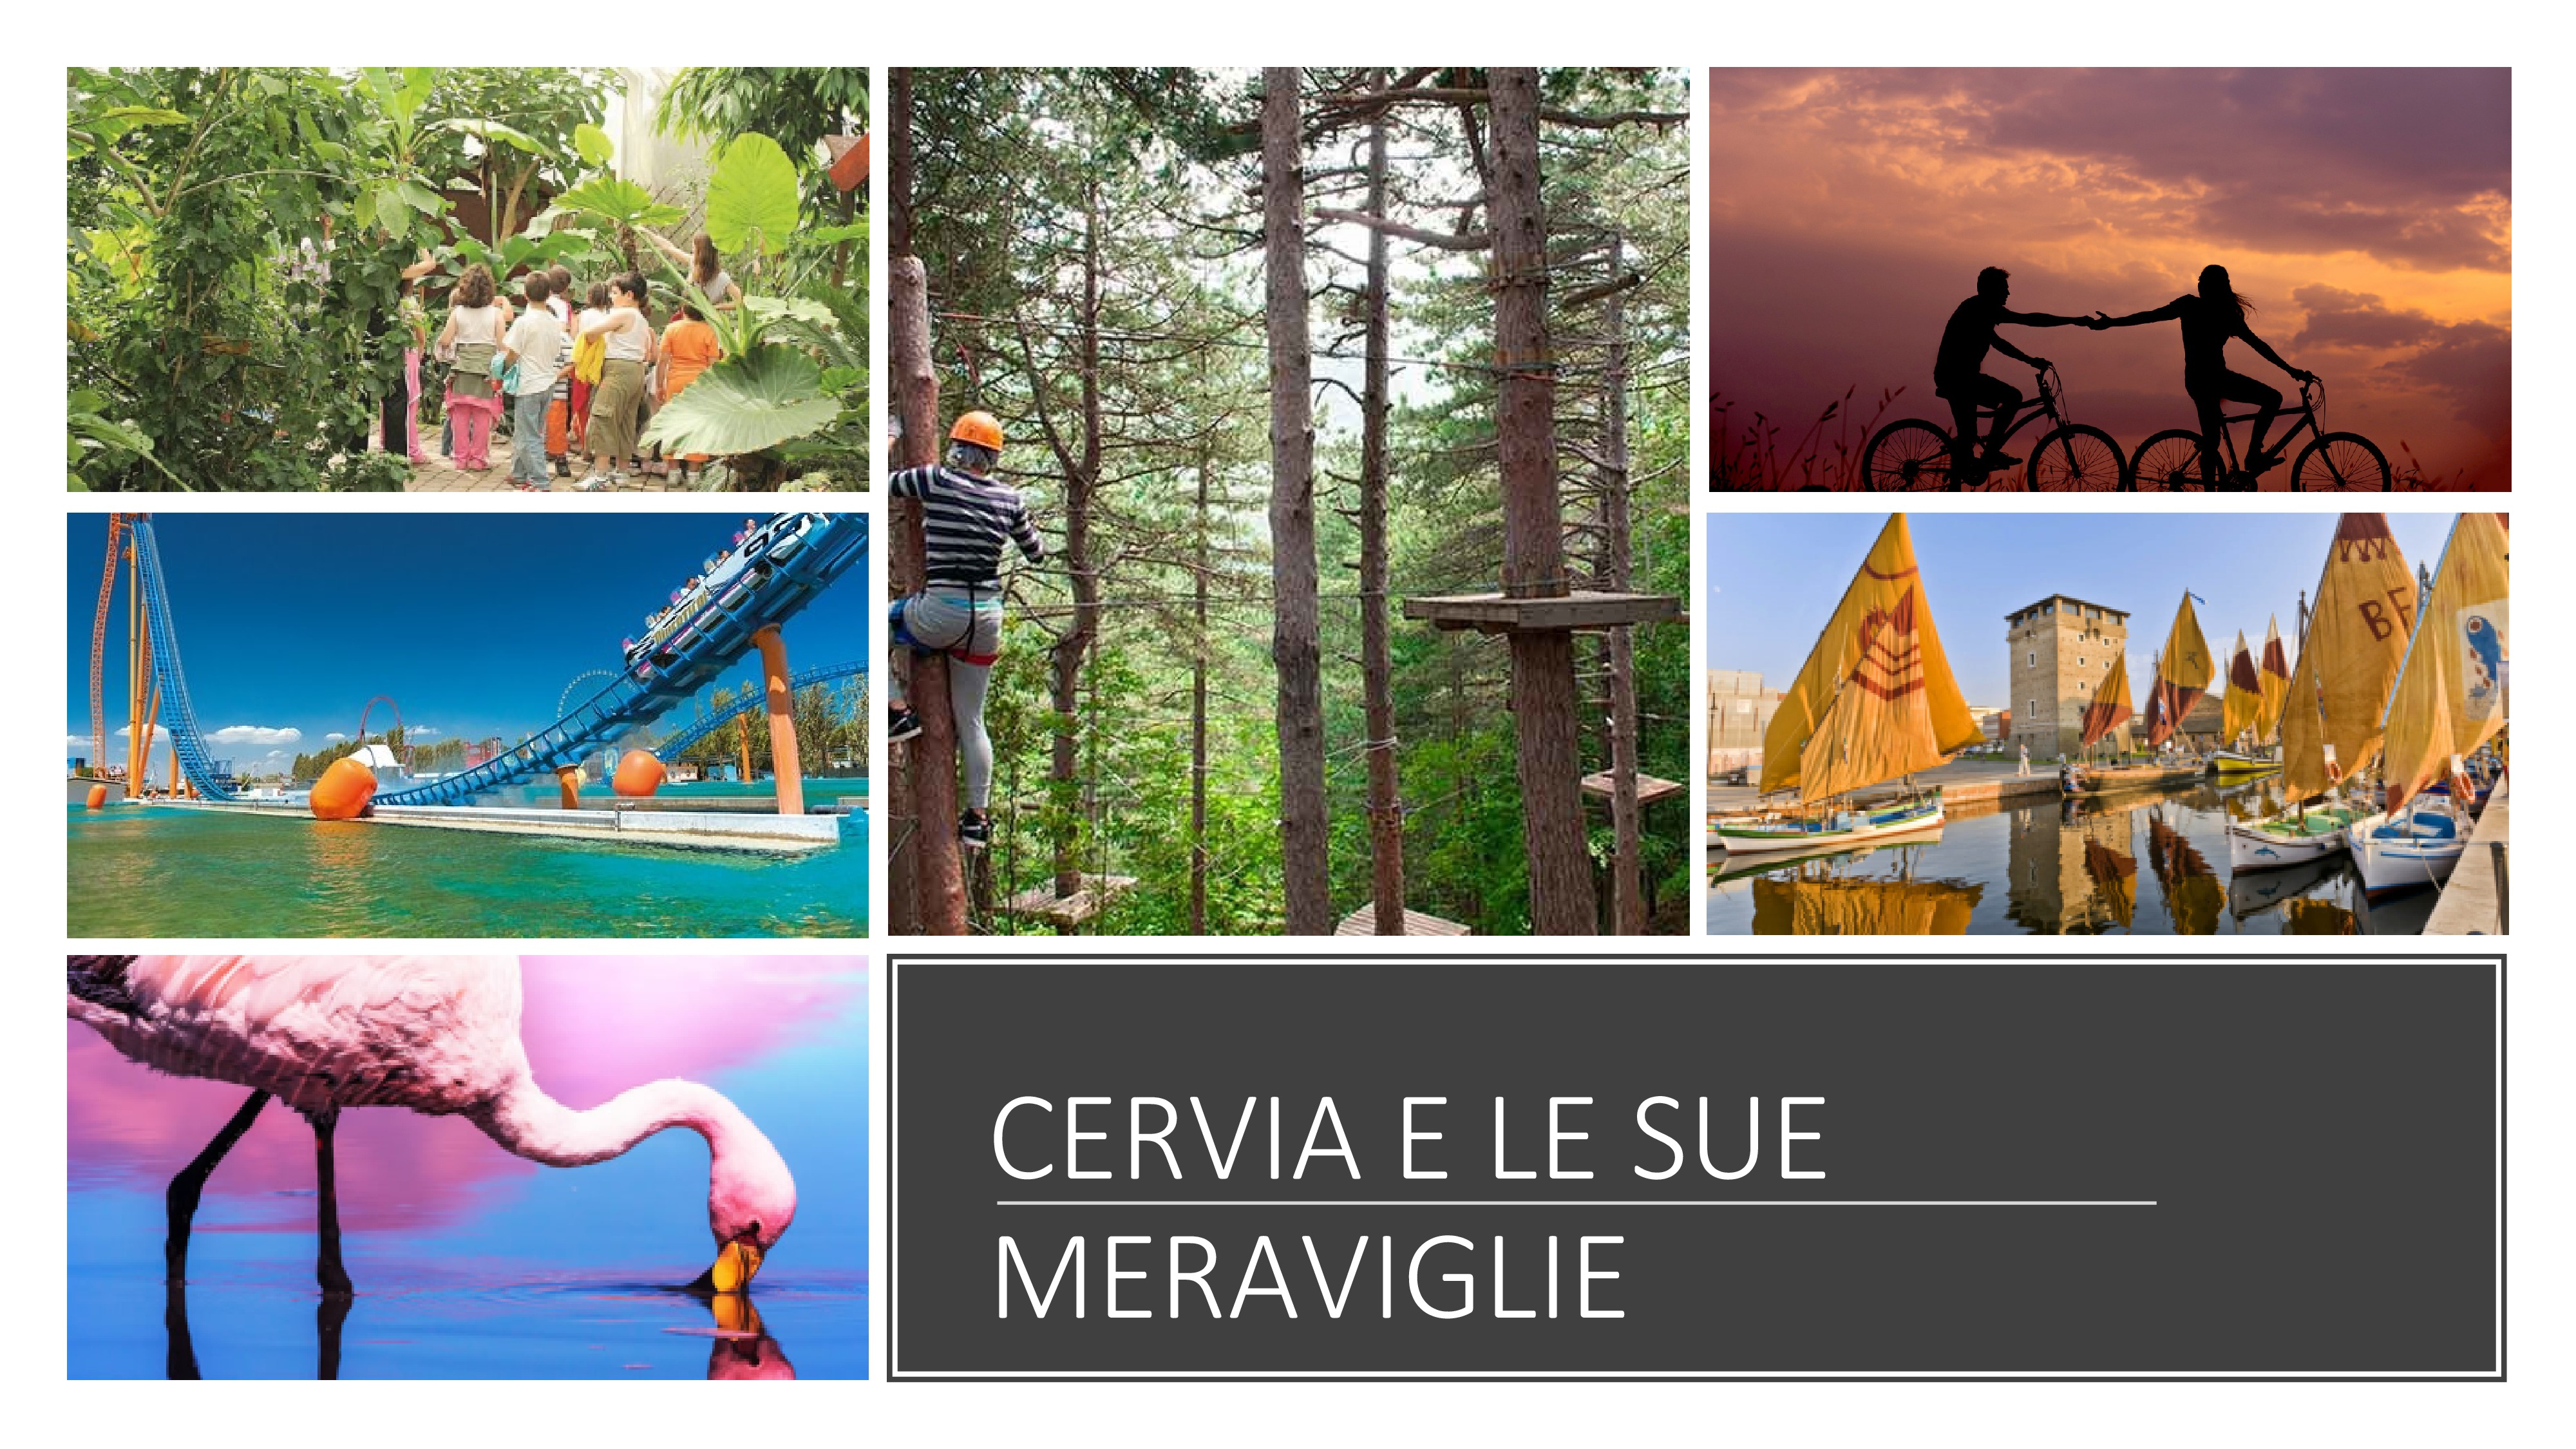 What to do in cervia